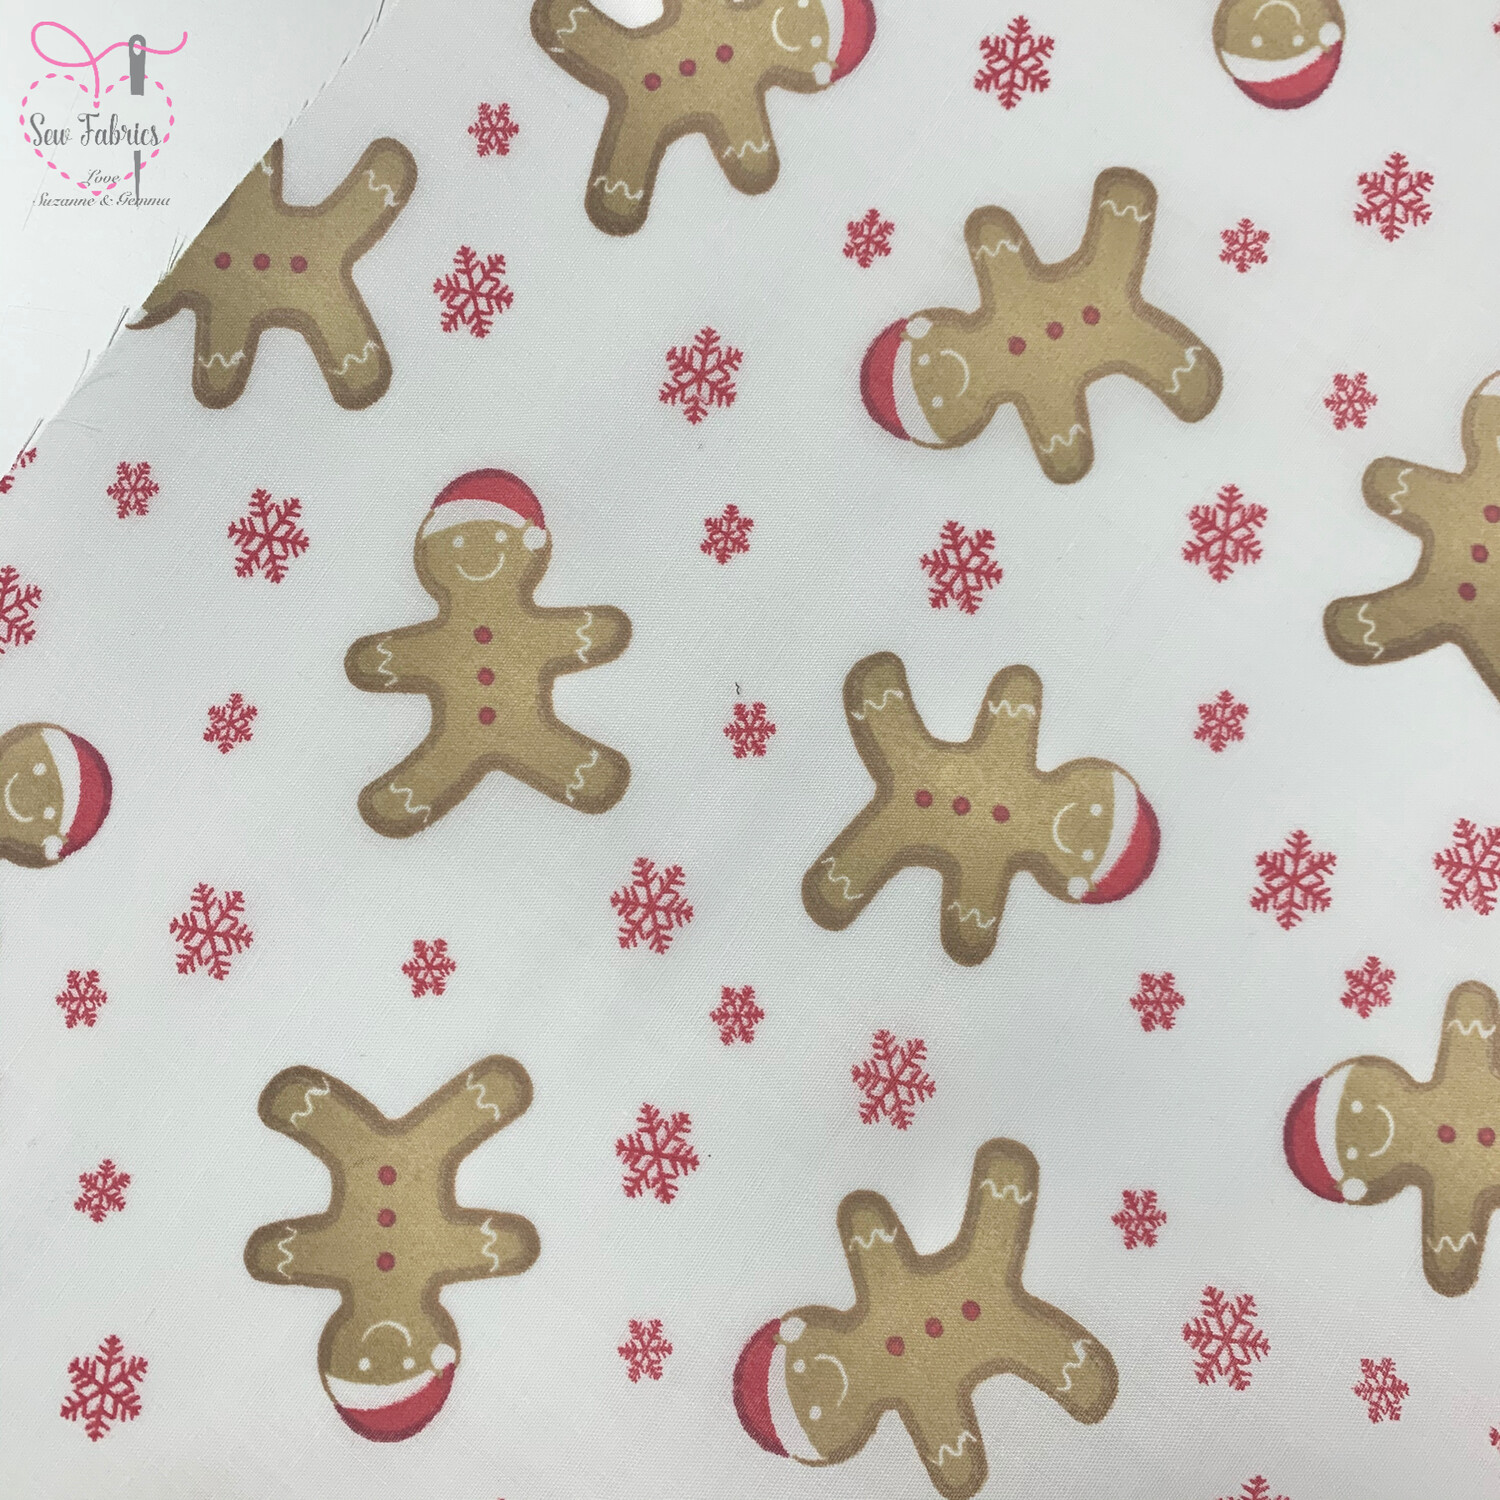 White Santa Gingerbread Man Christmas Print Polycotton Fabric, Novelty Festive Xmas Material